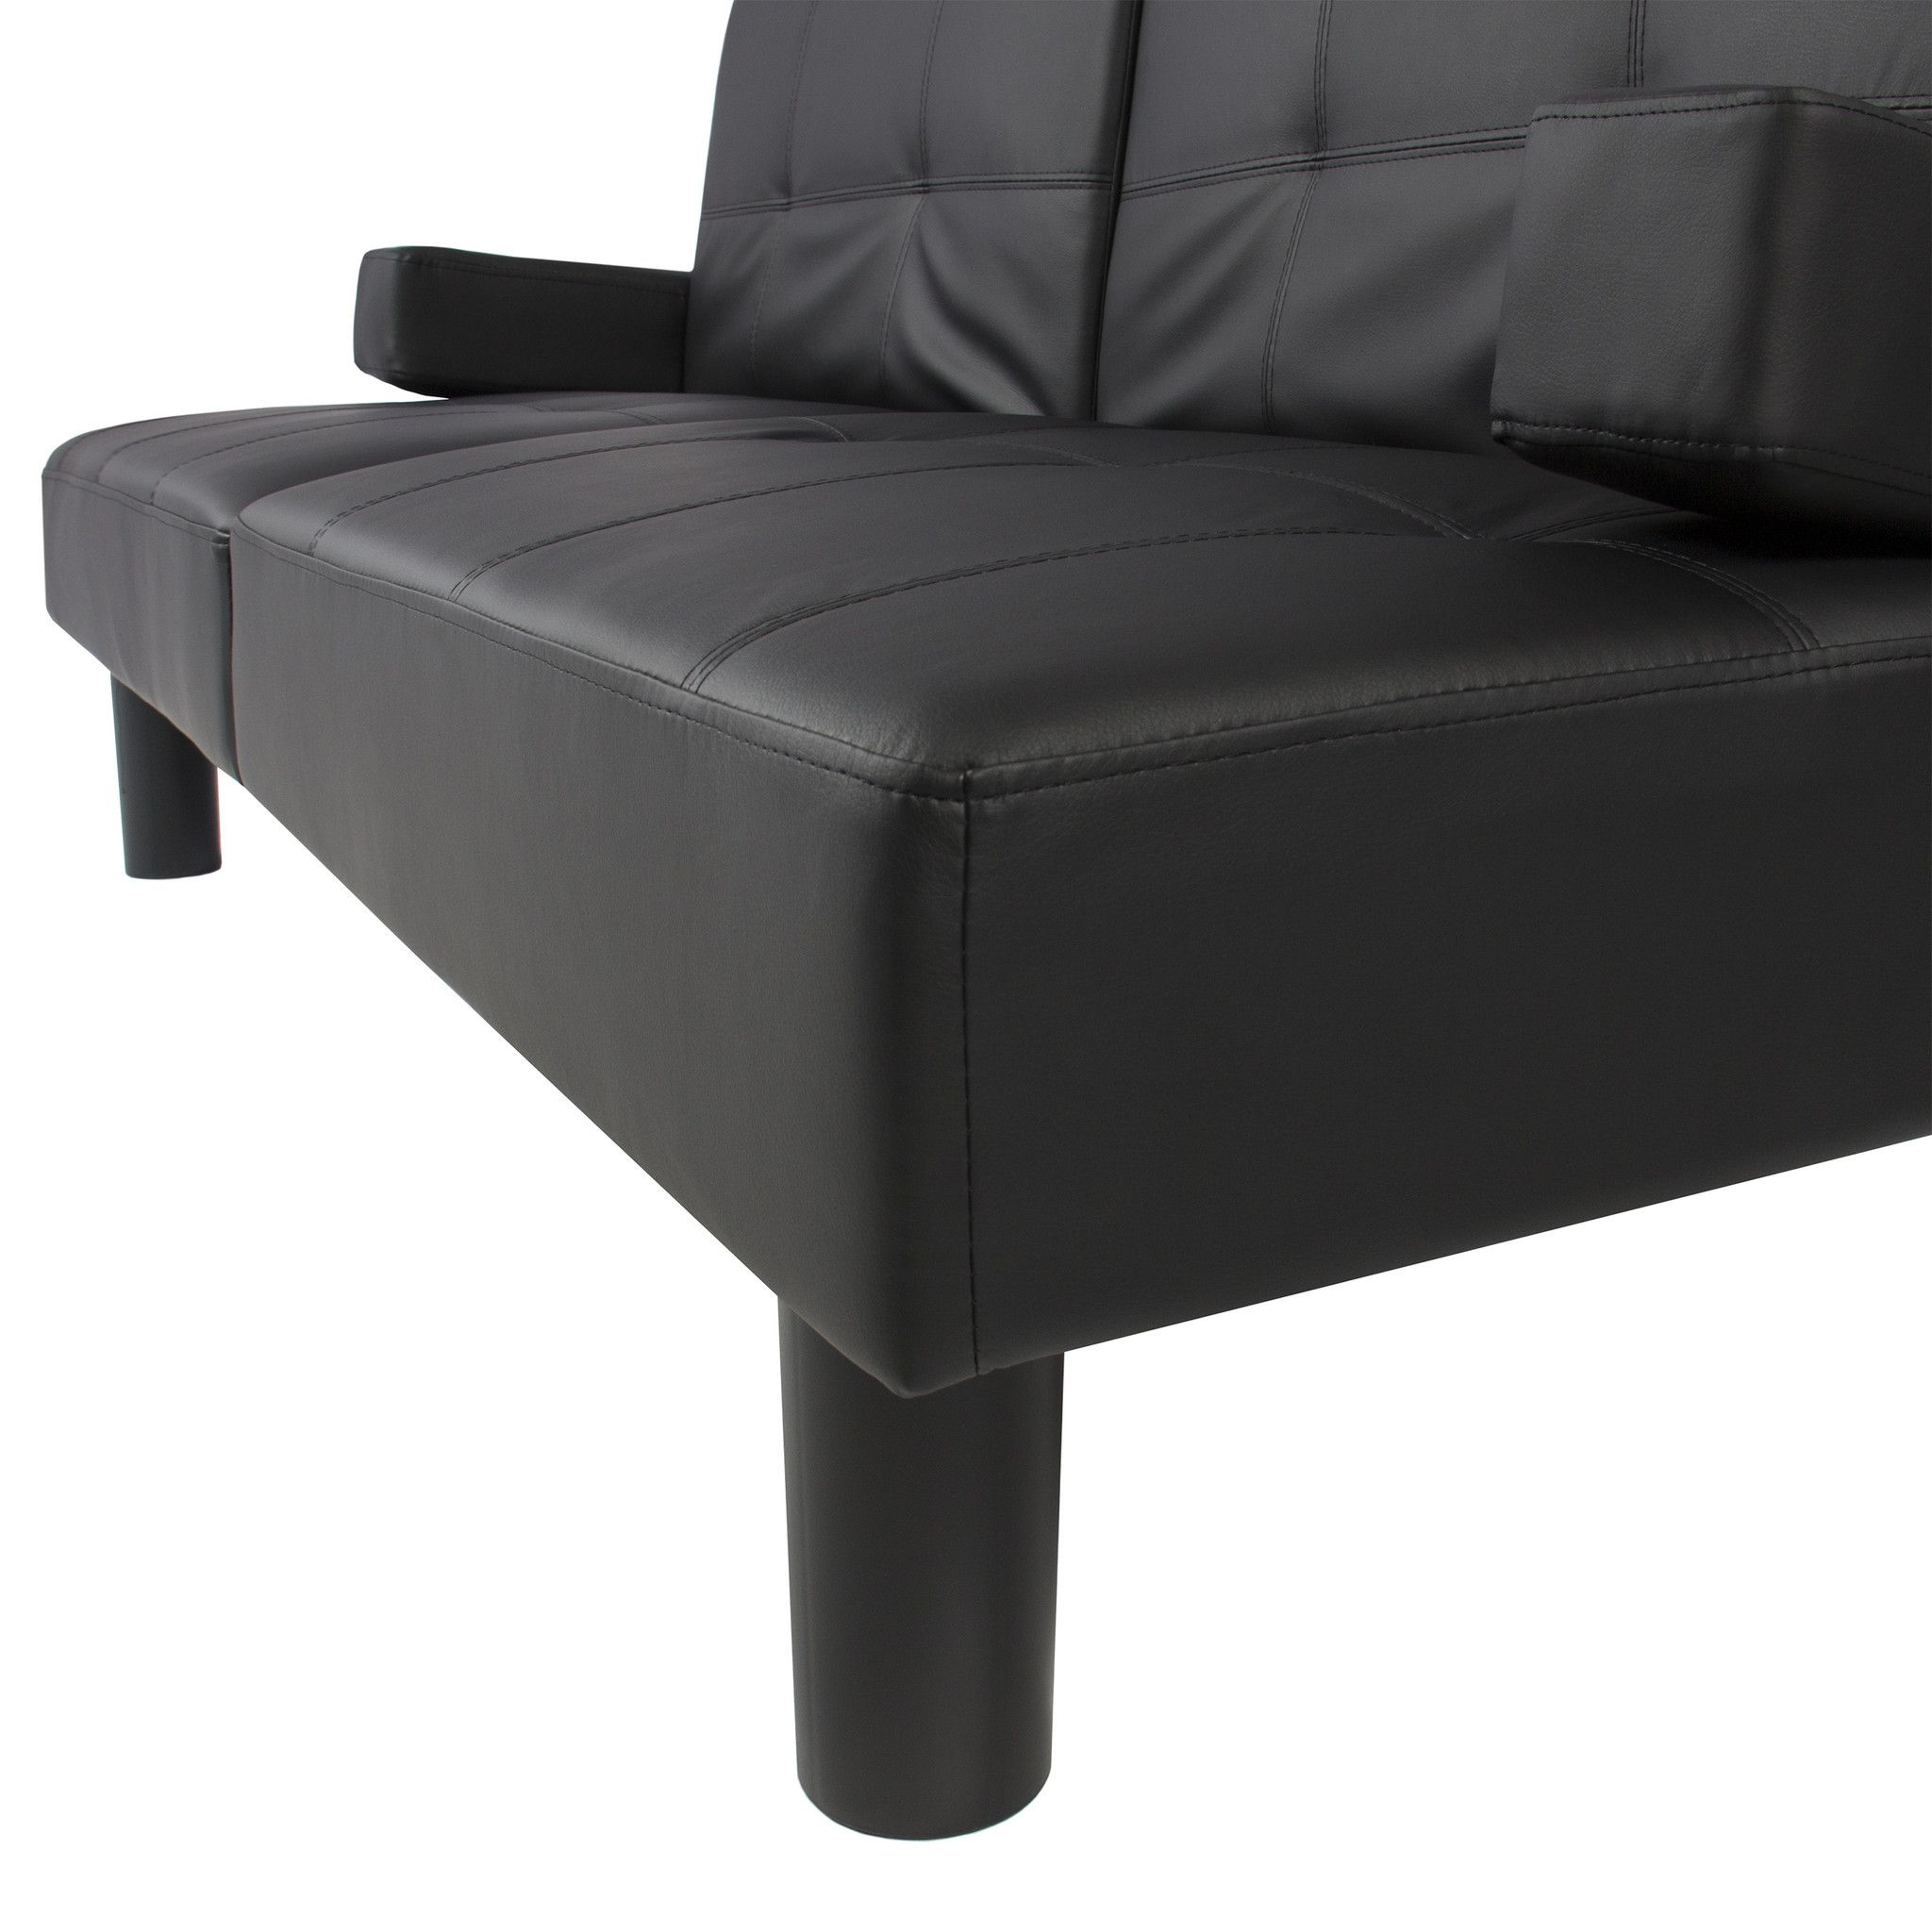 Faux Leather Sofa Bed Black